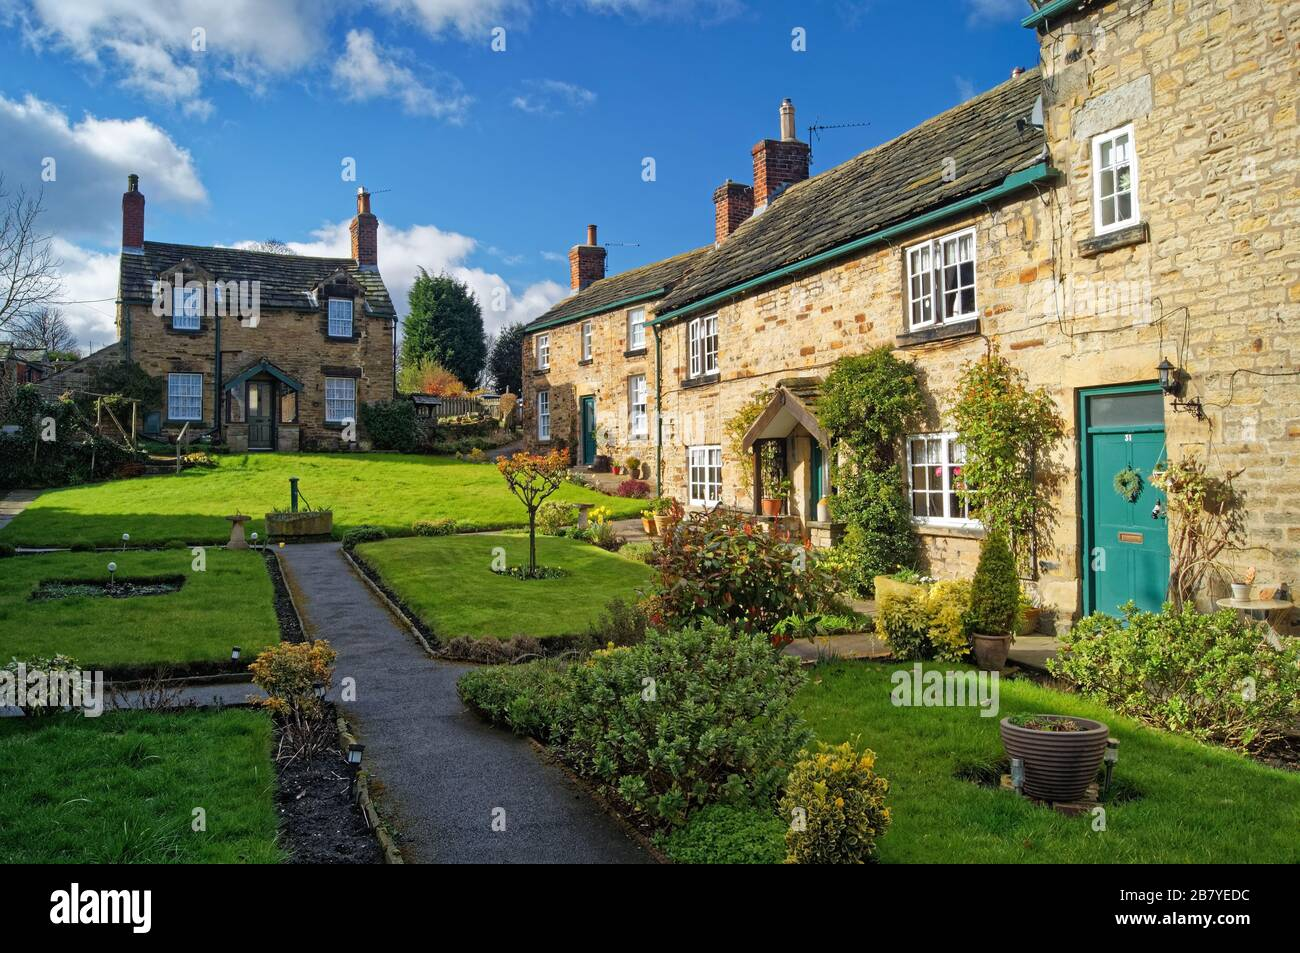 UK,South Yorkshire,Rotherham,Wentworth,Cottages in Paradise Square Stock Photo